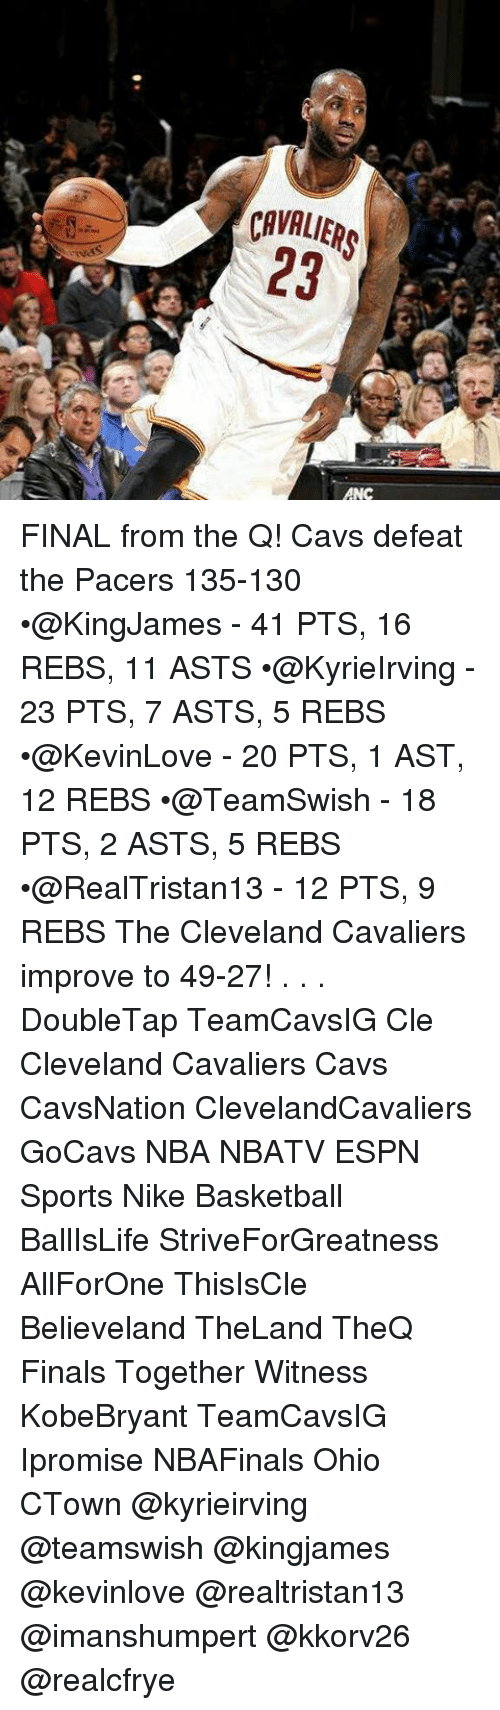 Basketball, Cavs, and Cleveland Cavaliers: CAVALIERS  23  ANC FINAL from the Q! Cavs defeat the Pacers 135-130 •@KingJames - 41 PTS, 16 REBS, 11 ASTS •@KyrieIrving - 23 PTS, 7 ASTS, 5 REBS •@KevinLove - 20 PTS, 1 AST, 12 REBS •@TeamSwish - 18 PTS, 2 ASTS, 5 REBS •@RealTristan13 - 12 PTS, 9 REBS The Cleveland Cavaliers improve to 49-27! . . . DoubleTap TeamCavsIG Cle Cleveland Cavaliers Cavs CavsNation ClevelandCavaliers GoCavs NBA NBATV ESPN Sports Nike Basketball BallIsLife StriveForGreatness AllForOne ThisIsCle Believeland TheLand TheQ Finals Together Witness KobeBryant TeamCavsIG Ipromise NBAFinals Ohio CTown @kyrieirving @teamswish @kingjames @kevinlove @realtristan13 @imanshumpert @kkorv26 @realcfrye